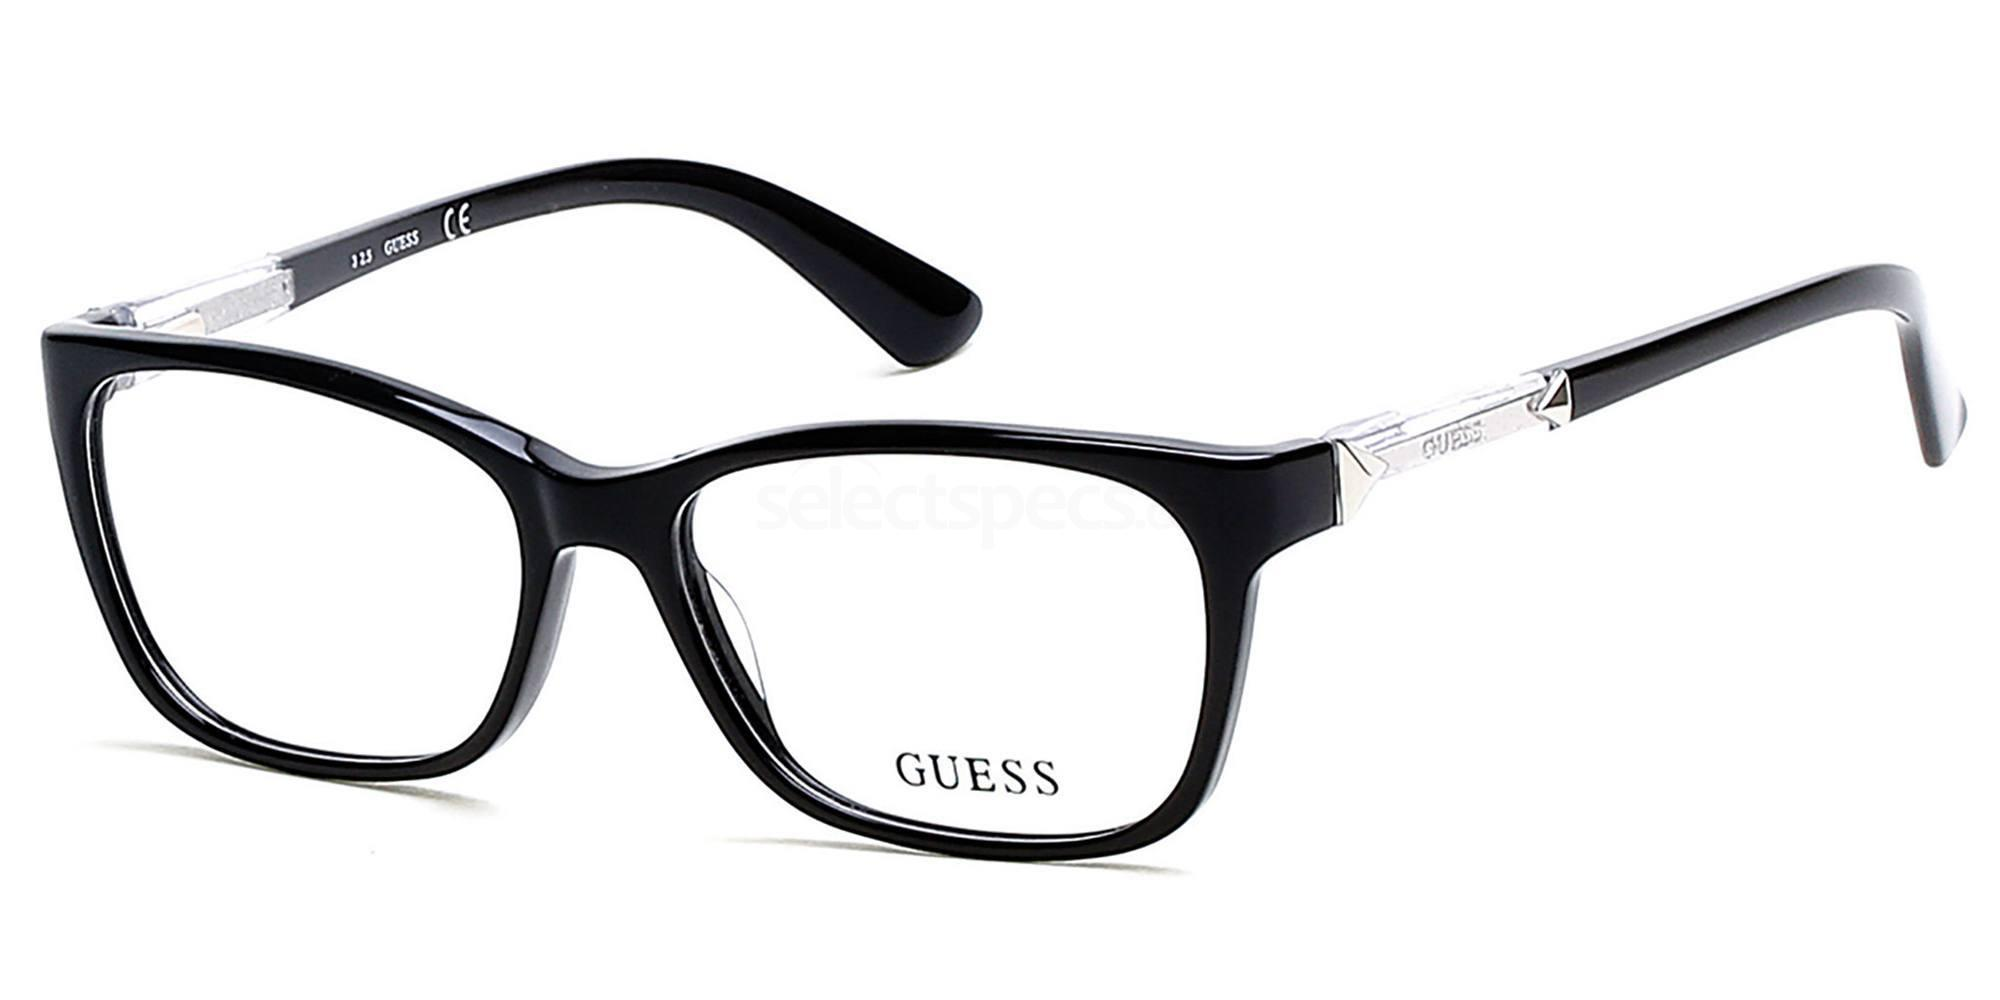 001 GU2561 Glasses, Guess